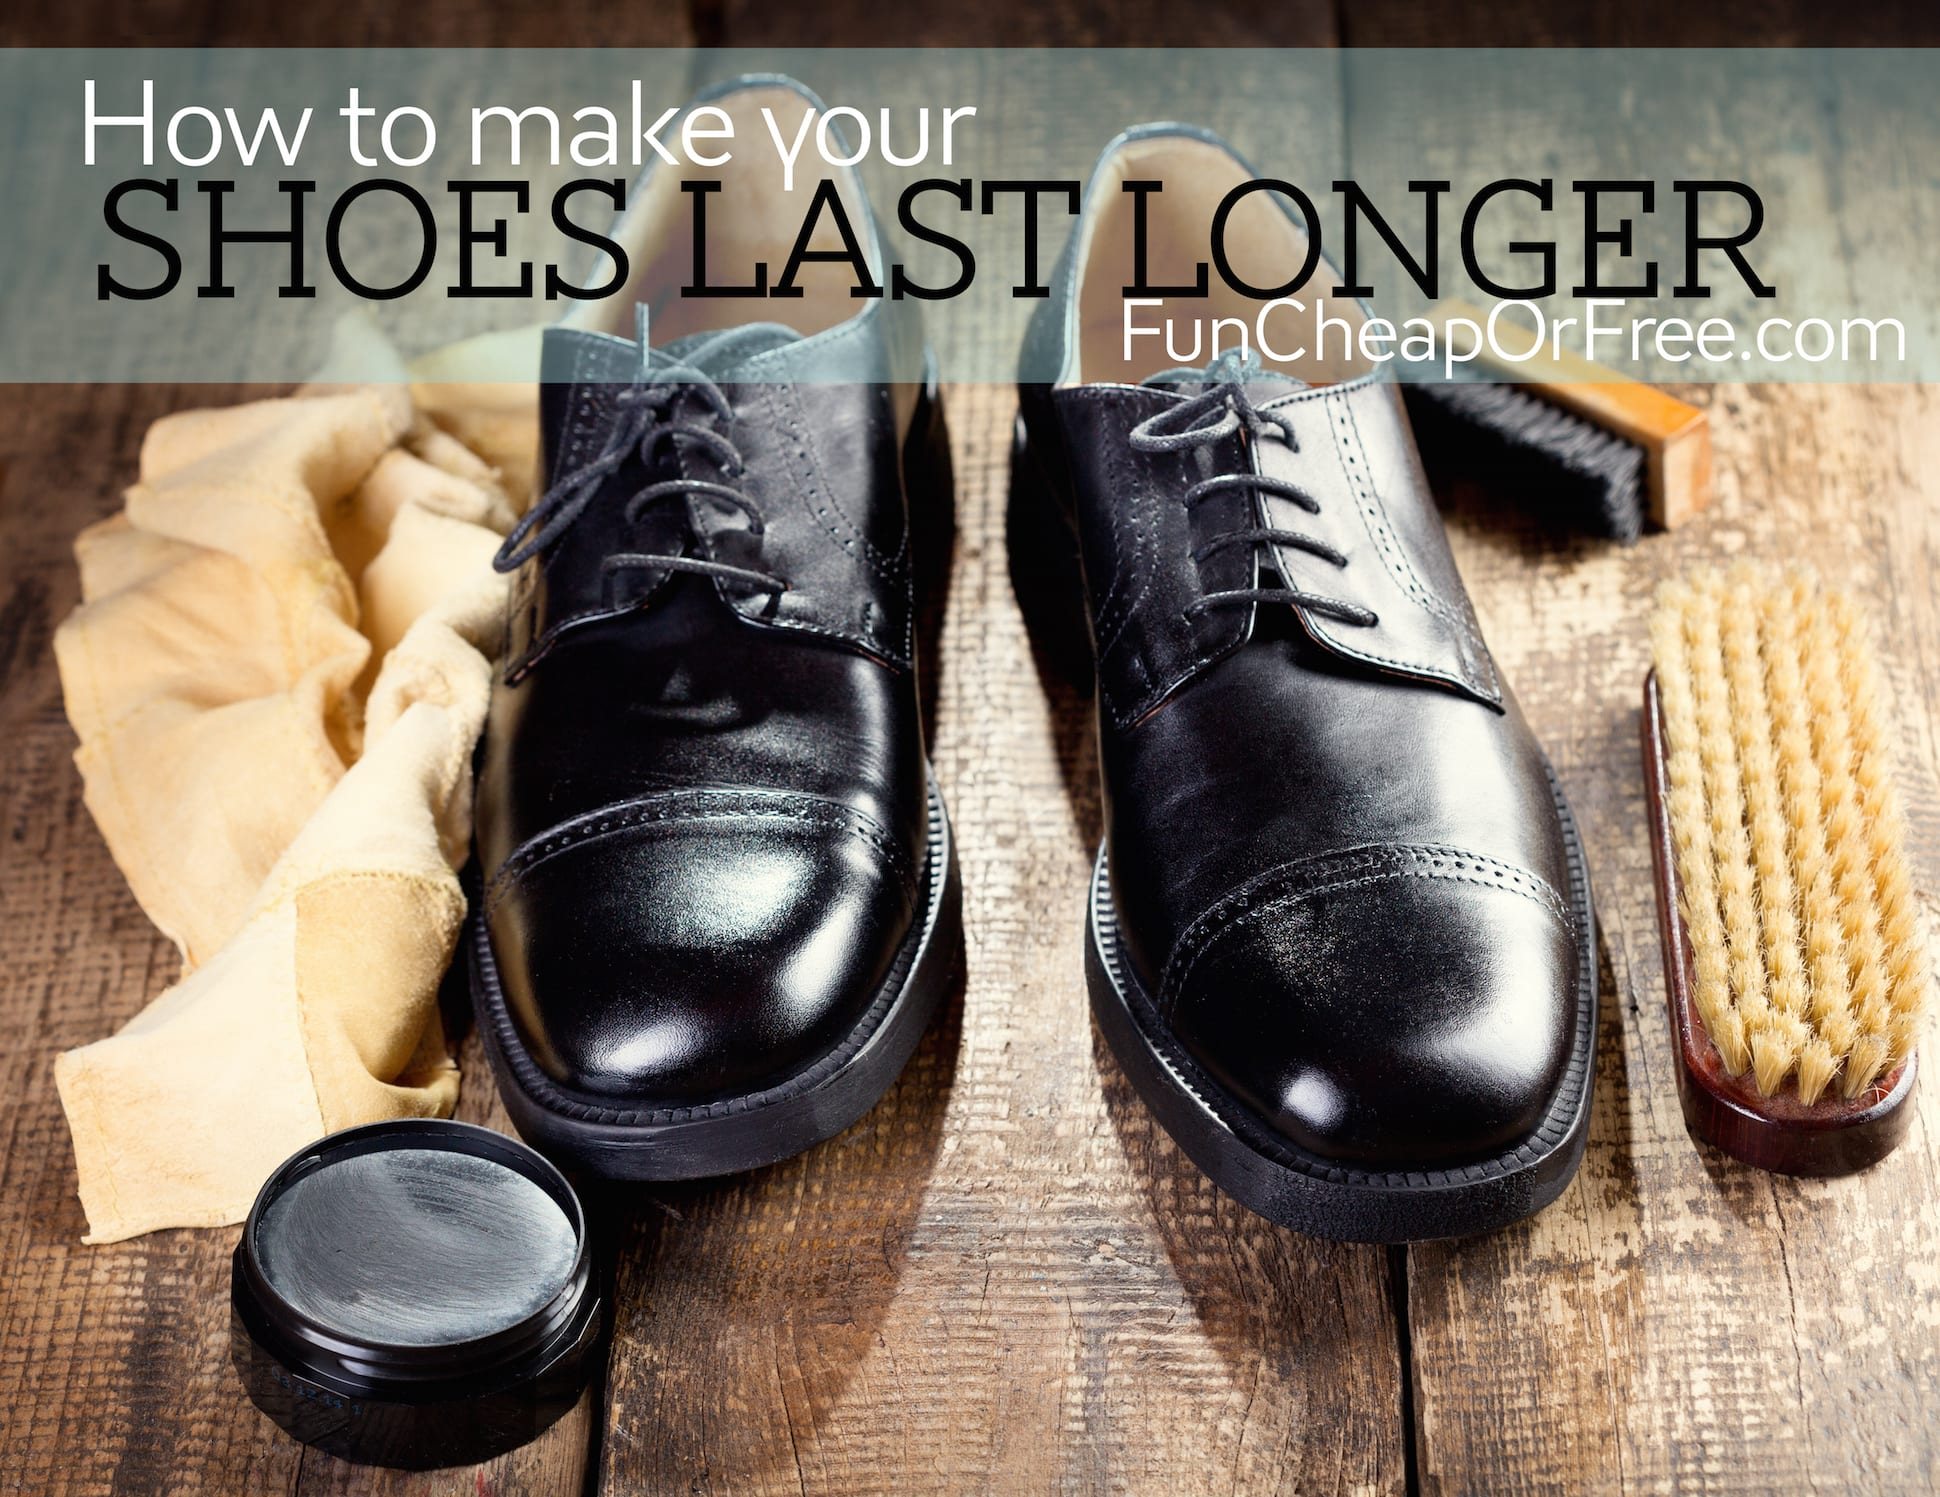 f154a93bb674 Simple ways to make your shoes last longer and keep them looking GREAT!  From FunCheapOrFree